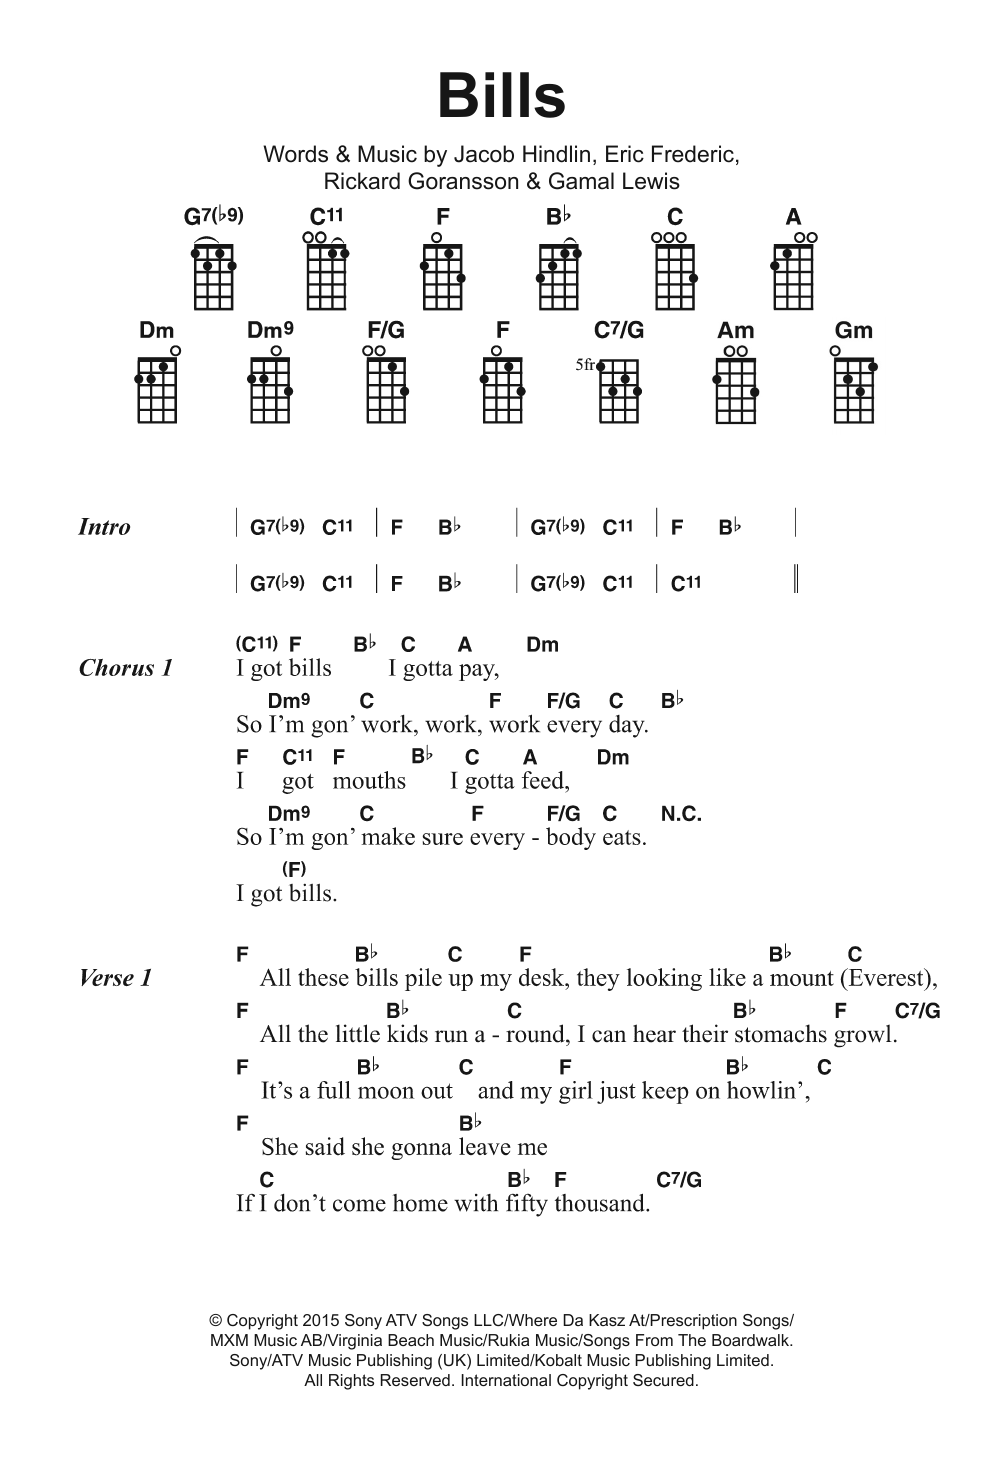 Bills Sheet Music